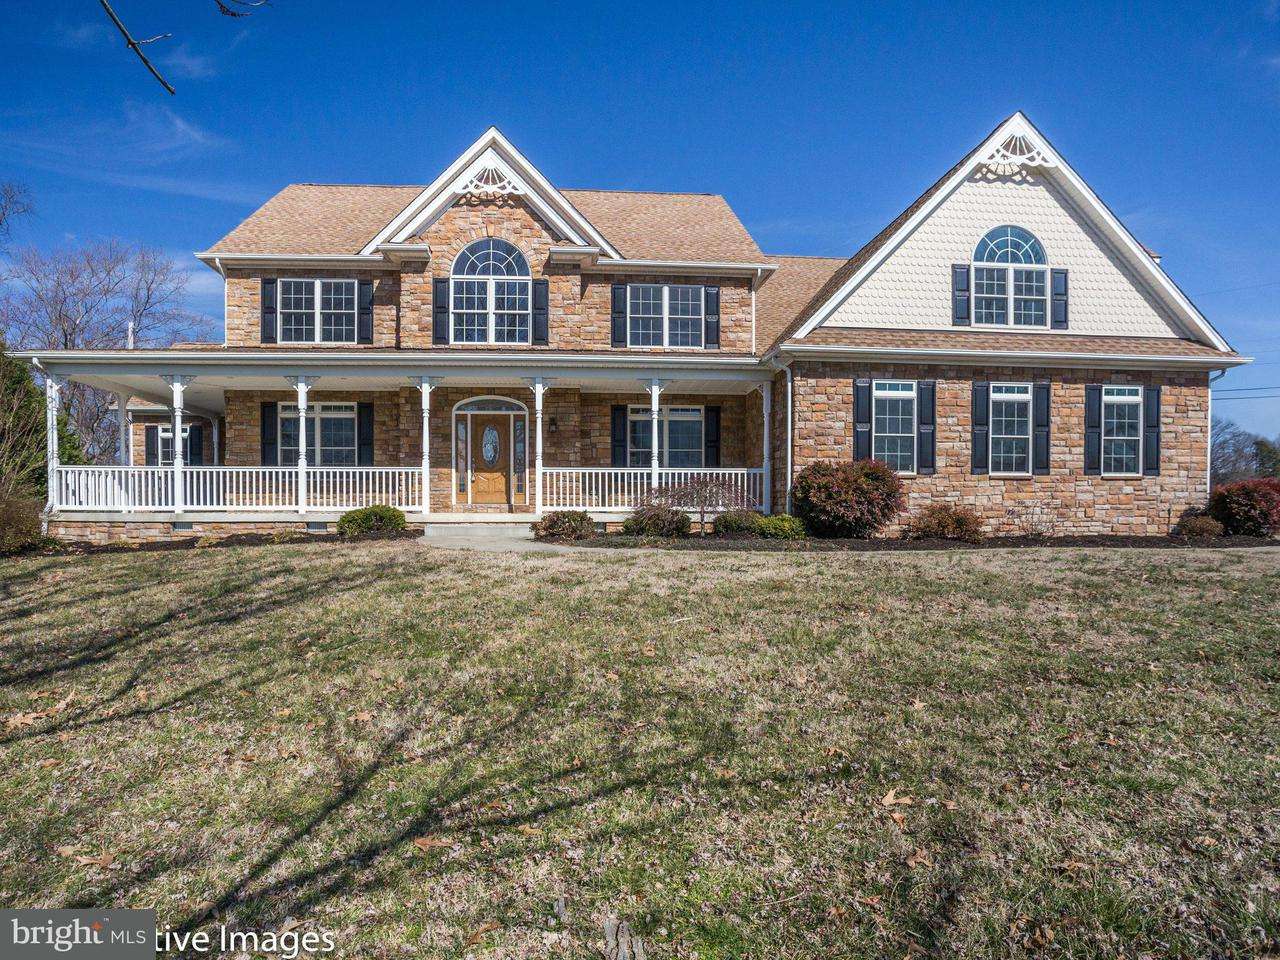 Single Family Home for Sale at 20545 GOLDEN THOMPSON Road 20545 GOLDEN THOMPSON Road Avenue, Maryland 20609 United States